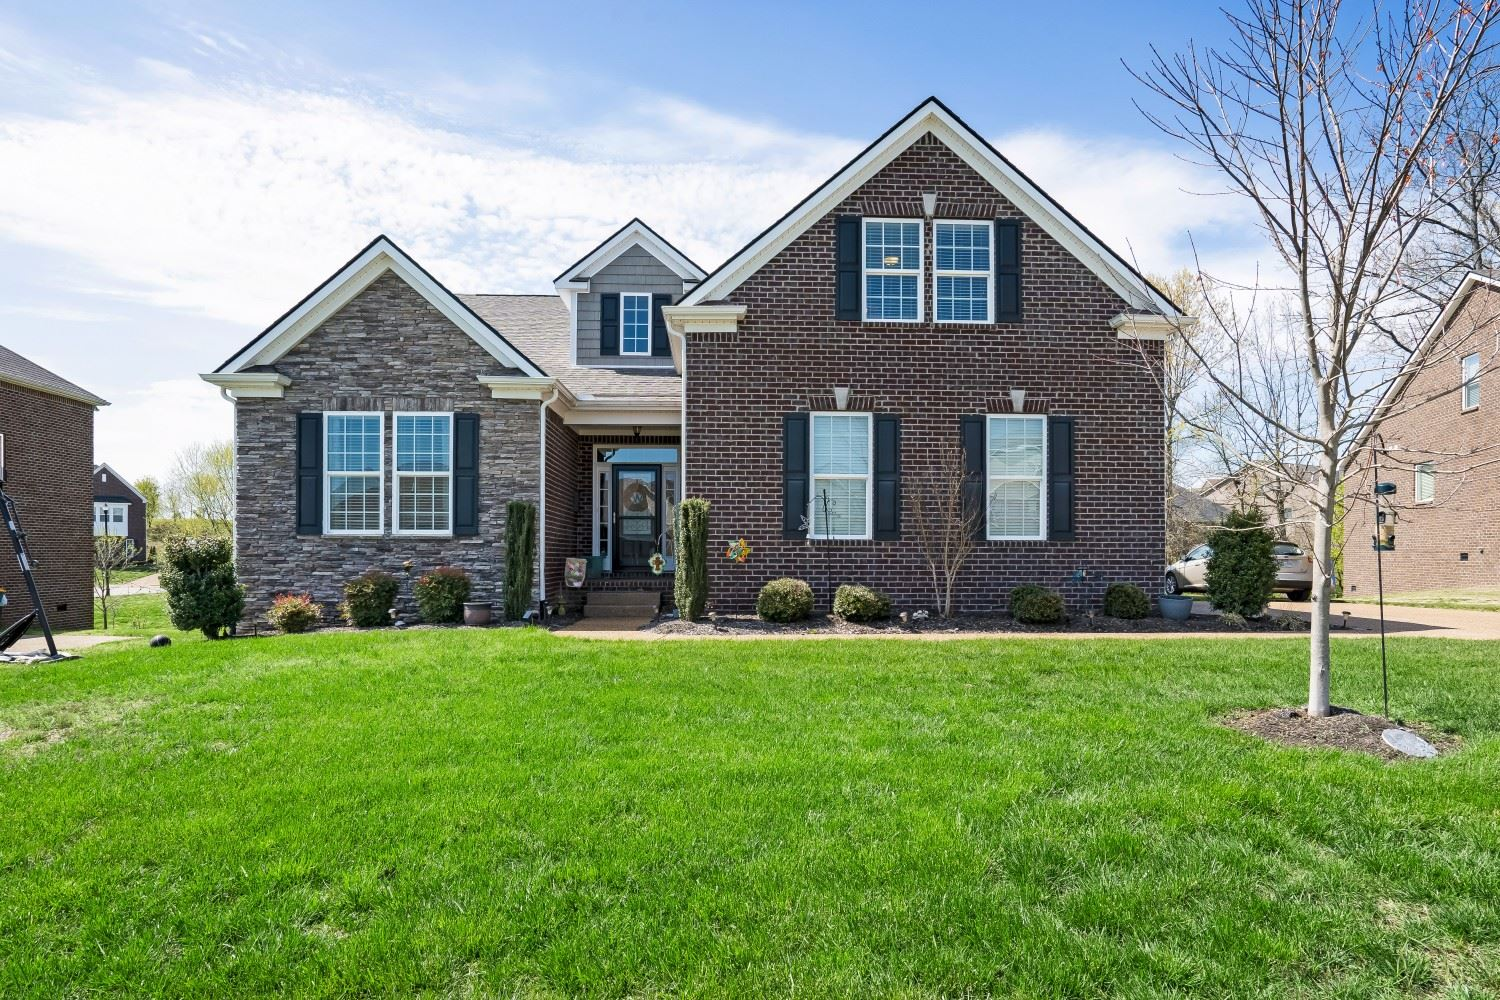 Photo of 5016 Keeley Dr, Spring Hill, TN 37174 (MLS # 2137211)